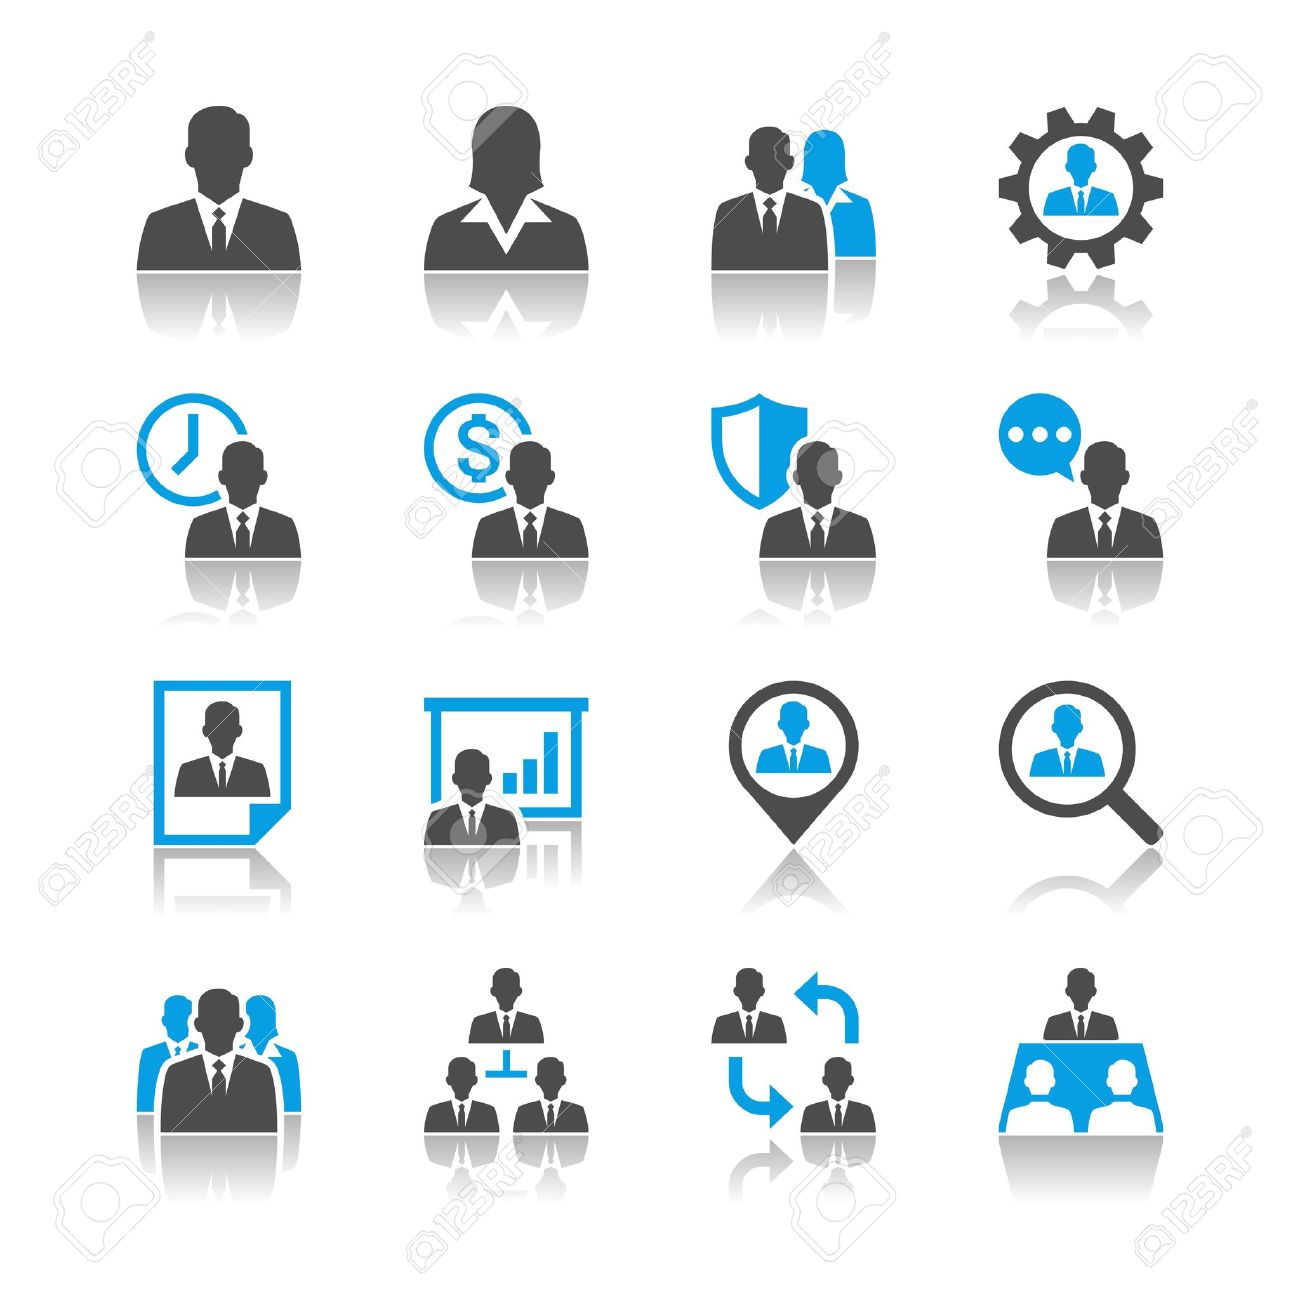 Human resource management icons - reflection theme Stock Vector - 18905601